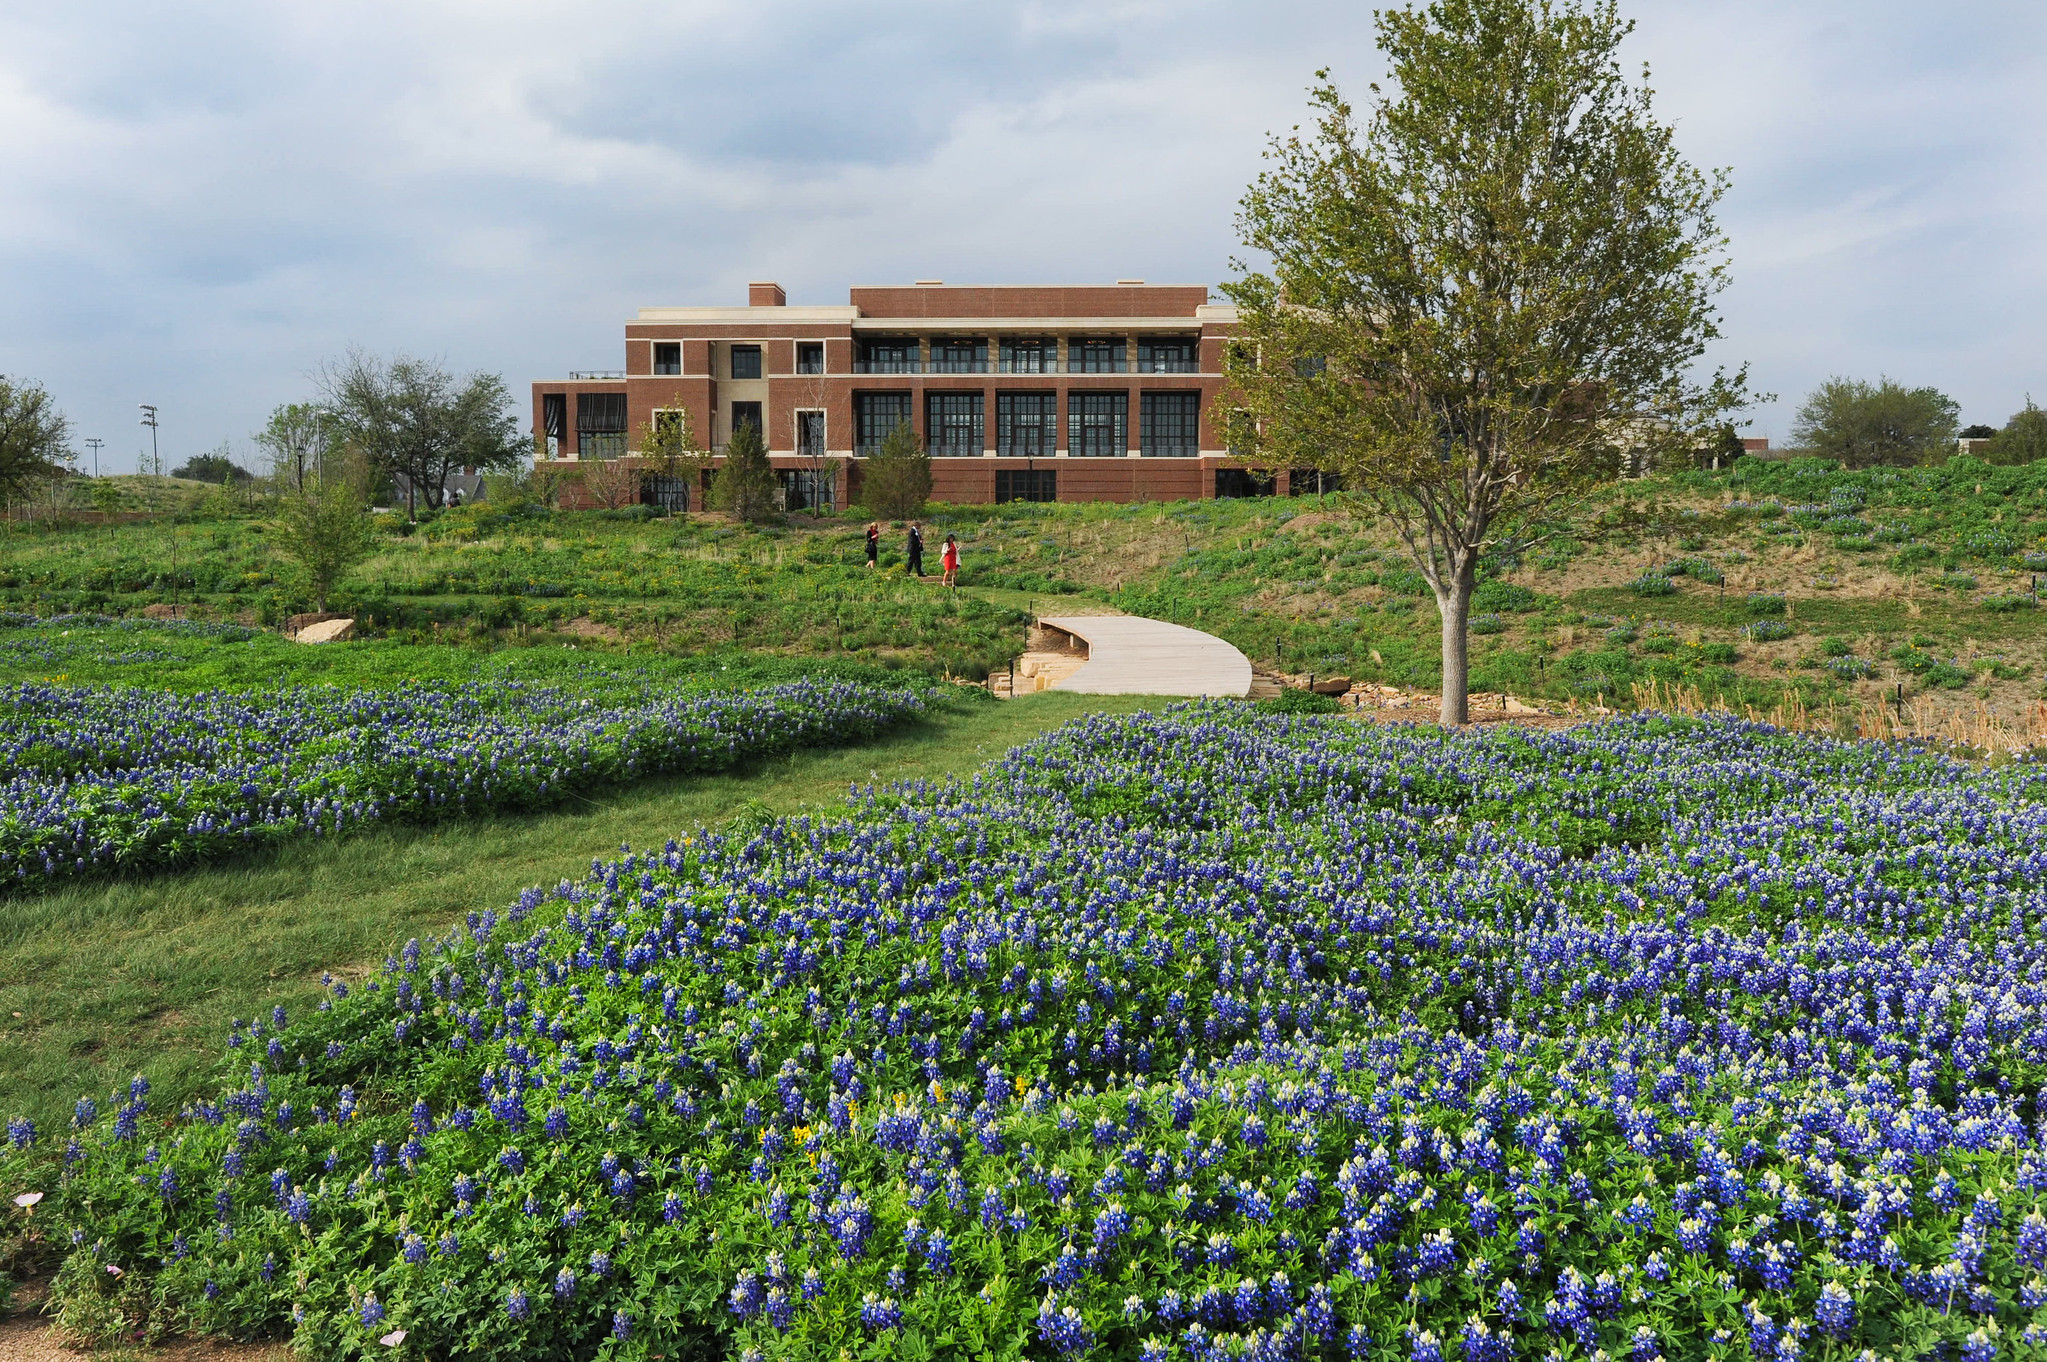 The Native Texas Park at the Bush Center. Photo Courtesy of Grant Miller for the George W. Bush Presidential Center.